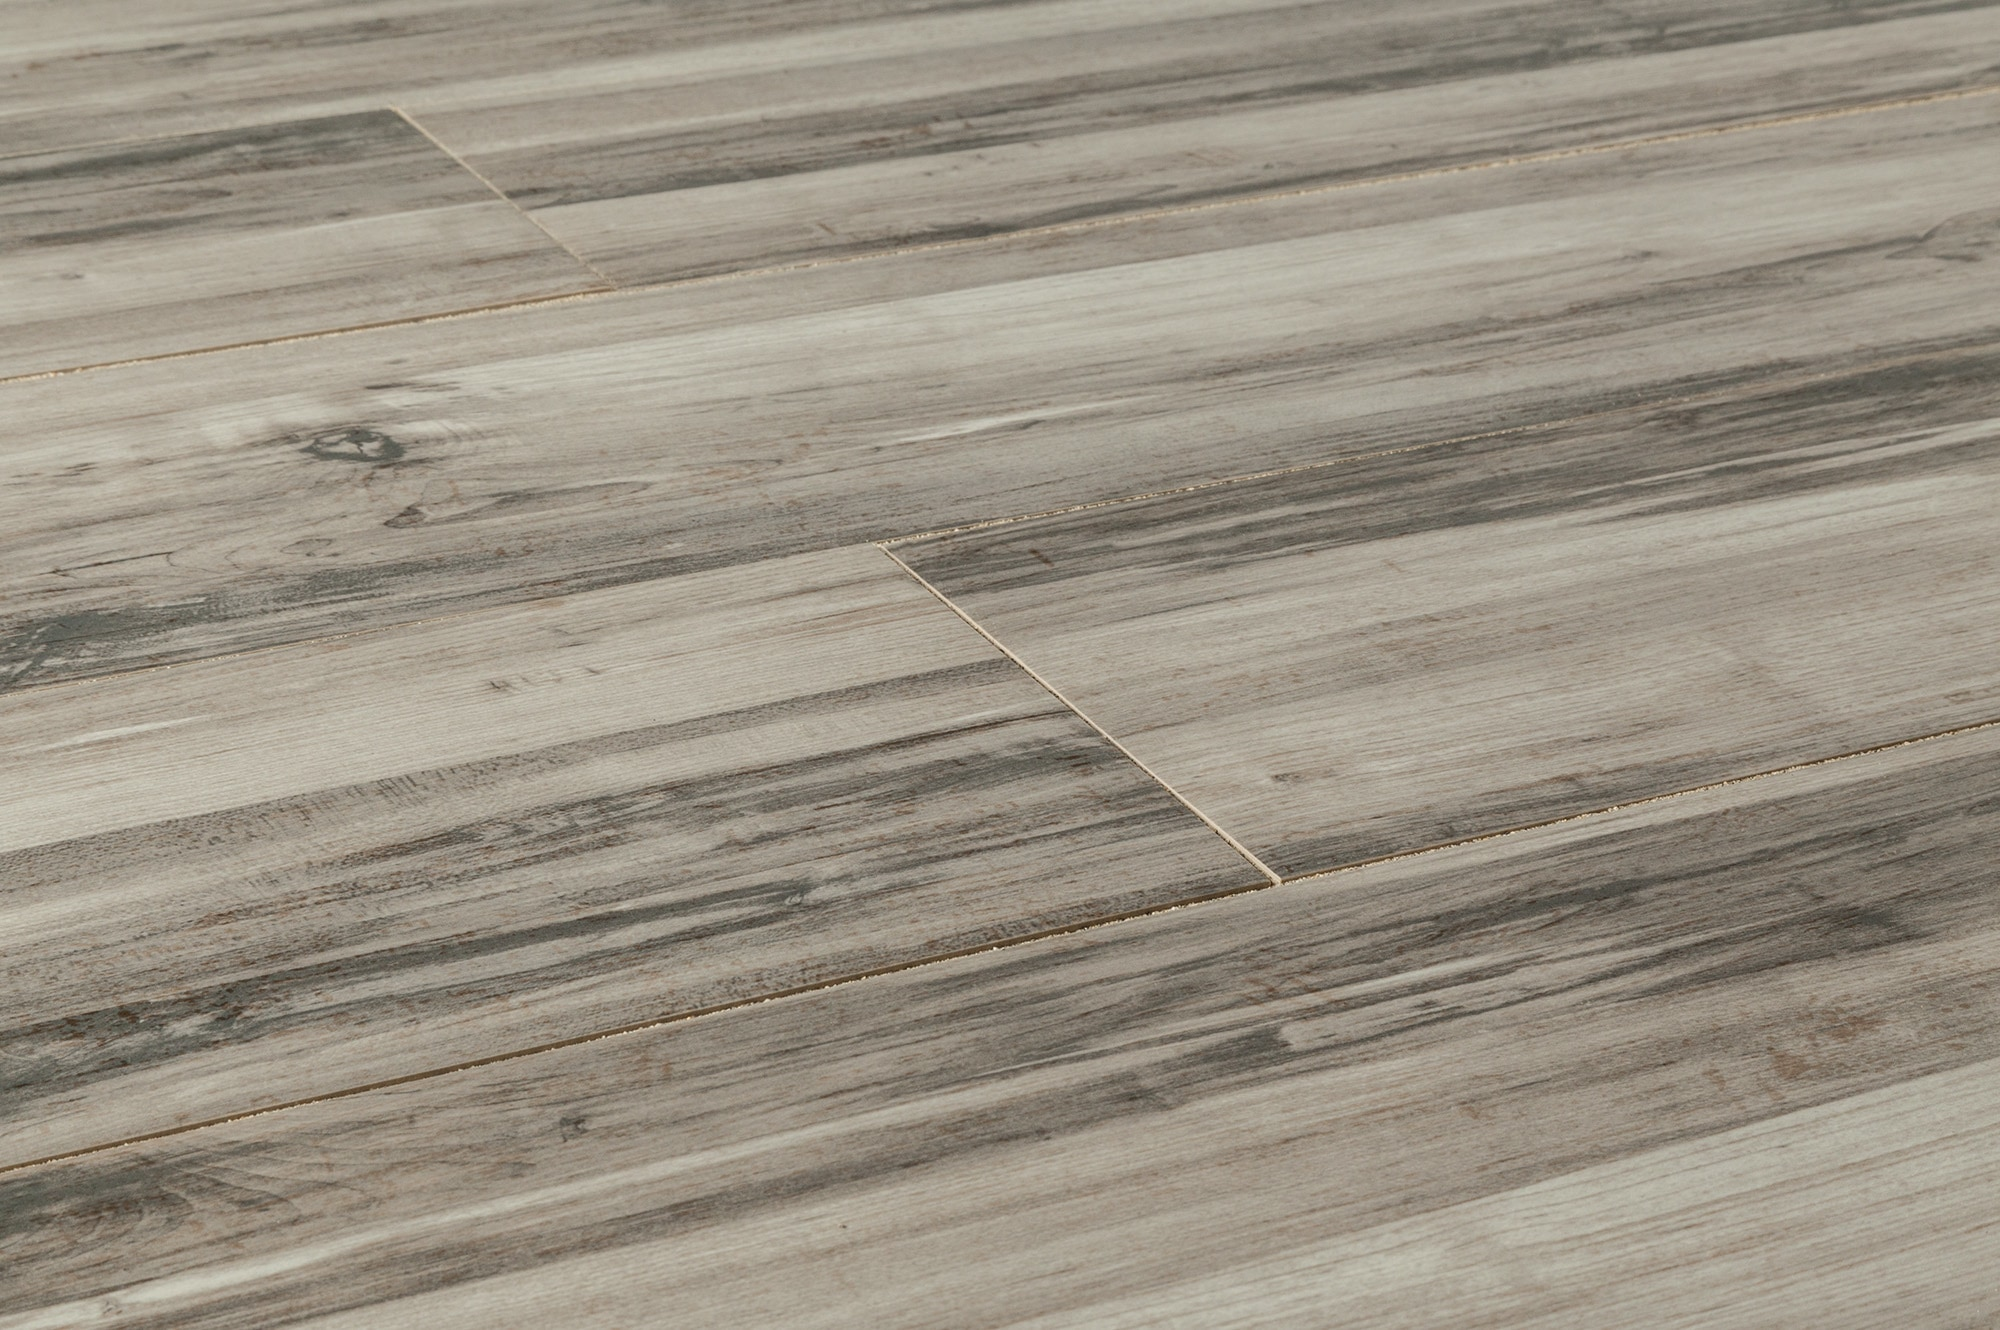 Torino Porcelain Tile Eroded Wood Plank Collection Made In Spain Fossilized 8 X45 Matte